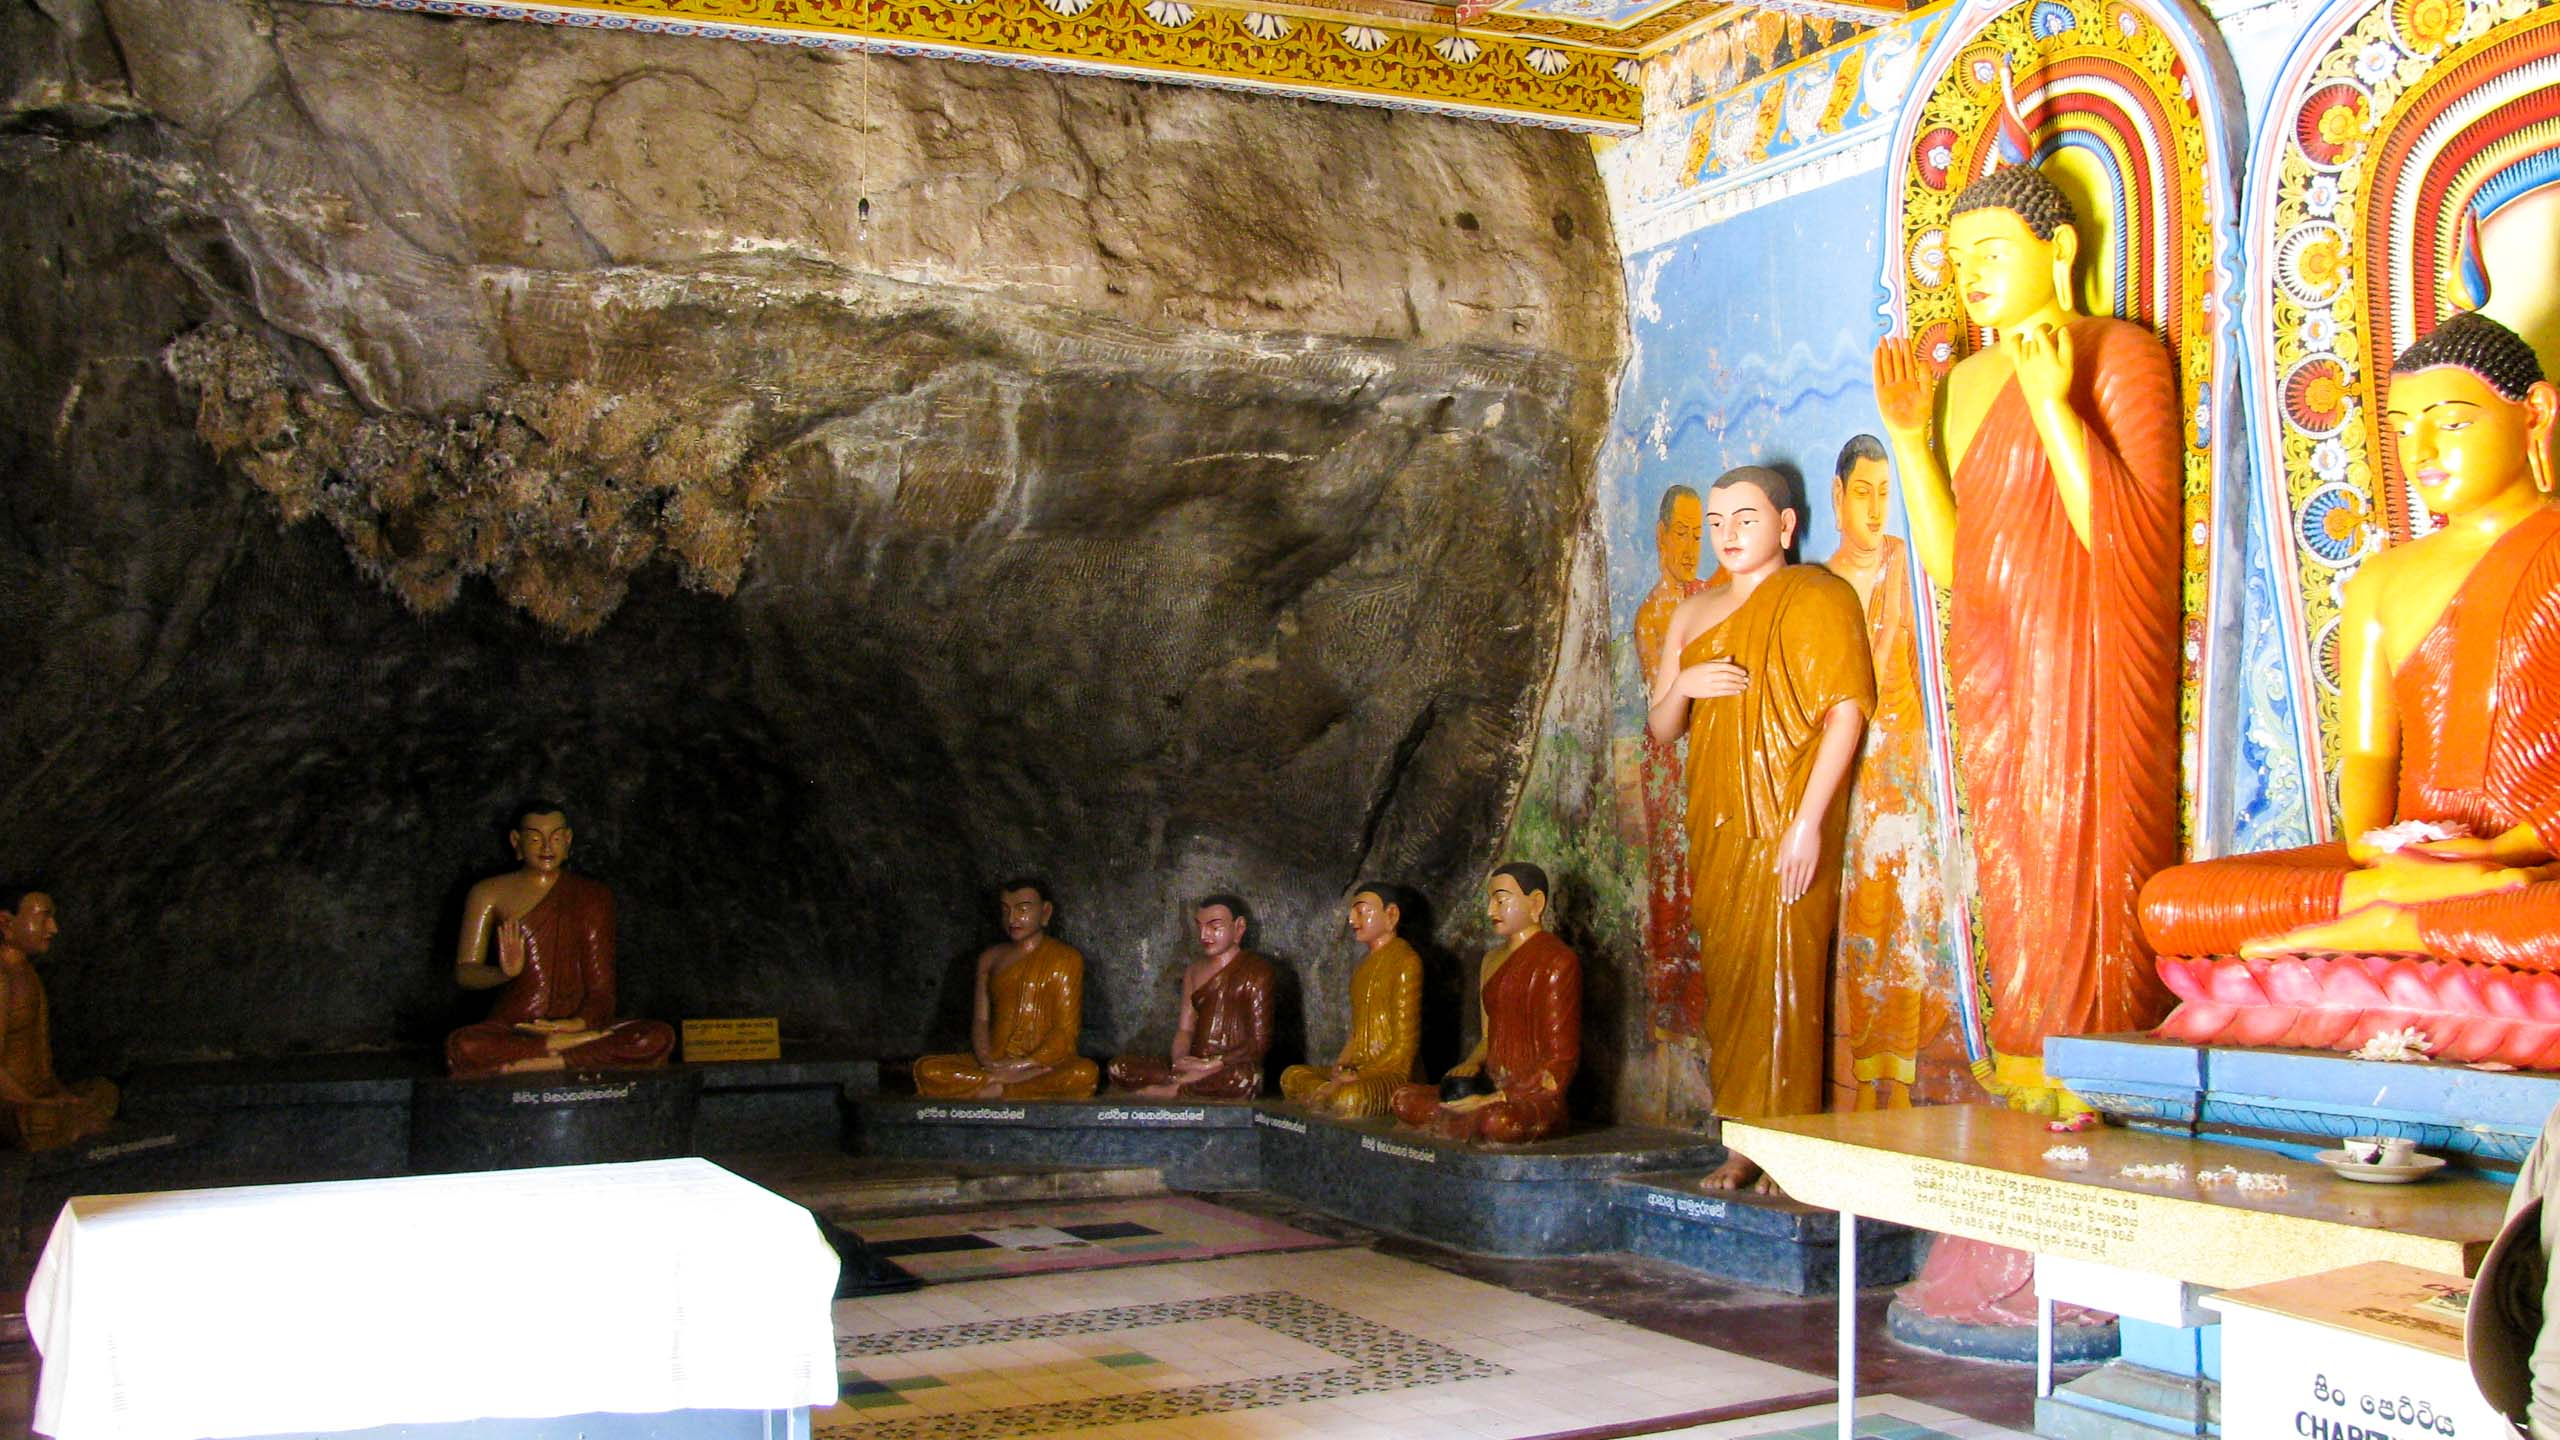 Interior of Sri Lanka temple